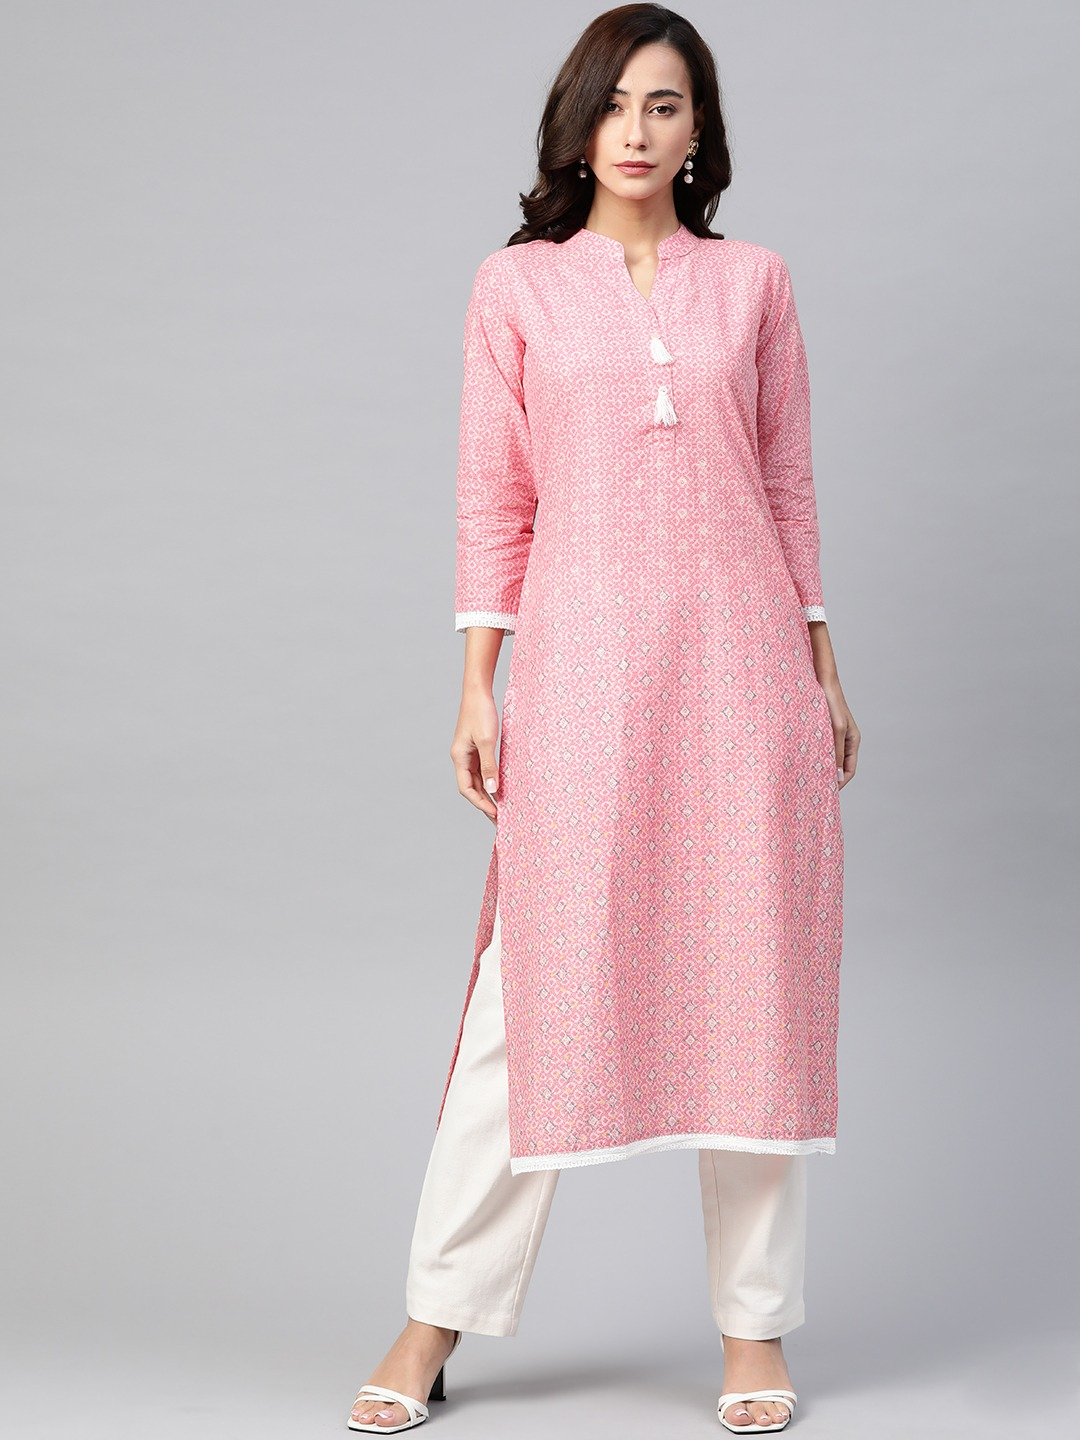 Jompers   Jompers Women Cotton Kurta with Lace at border